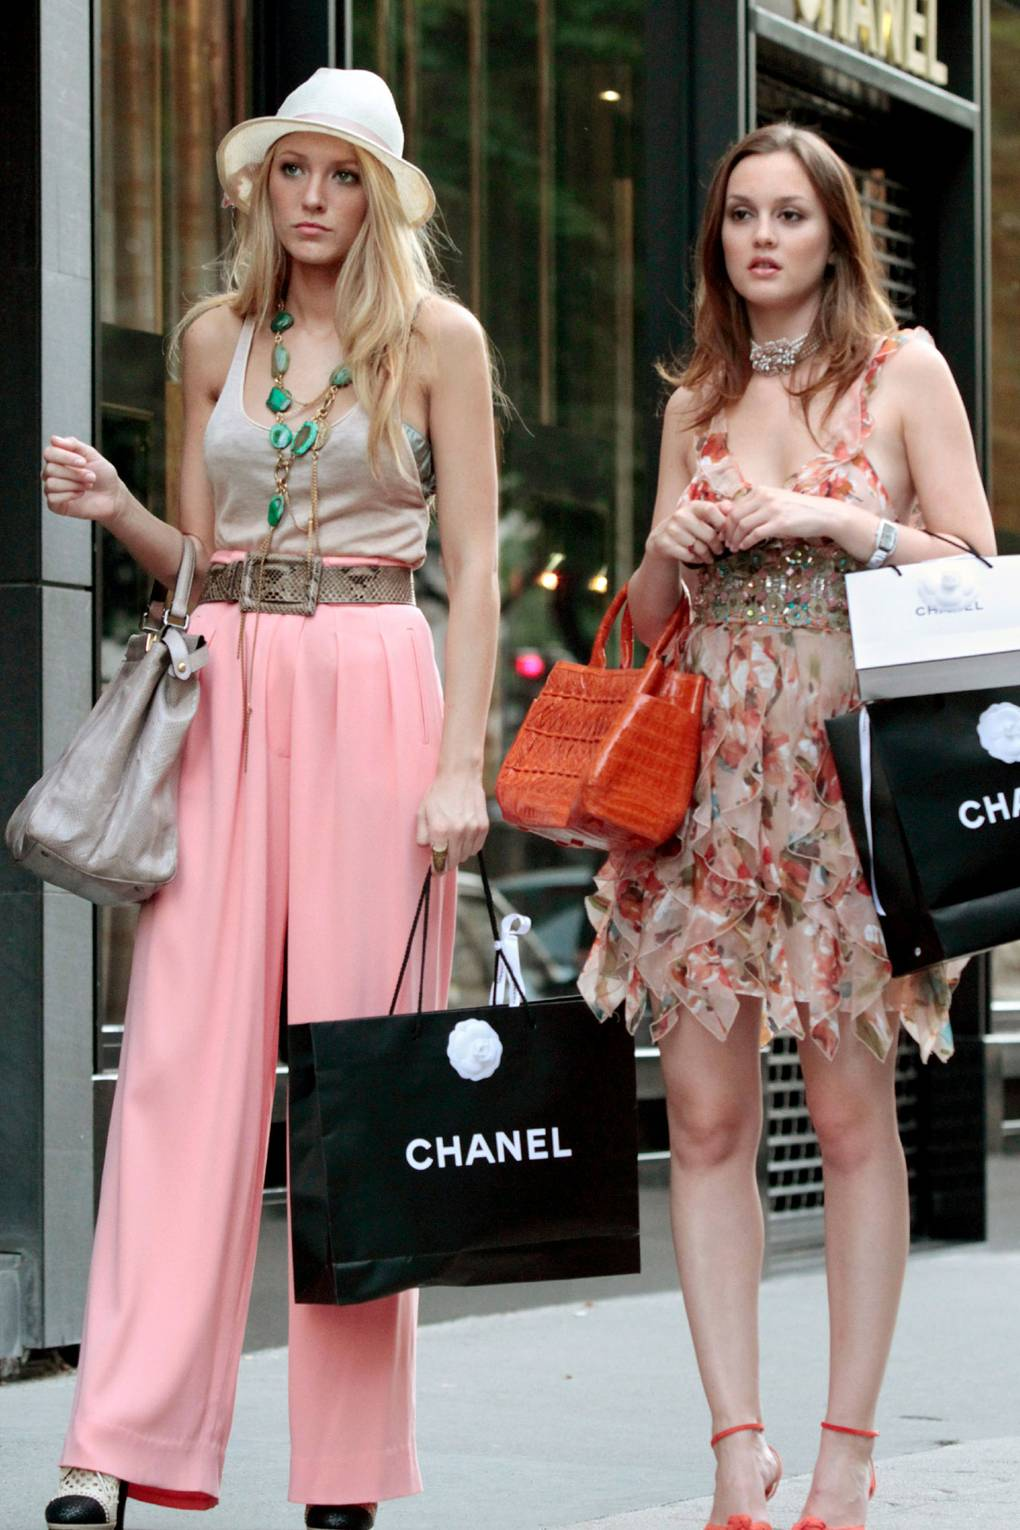 Gossip Girl Style War: Serena V Blair - celebrity fashion and style ...